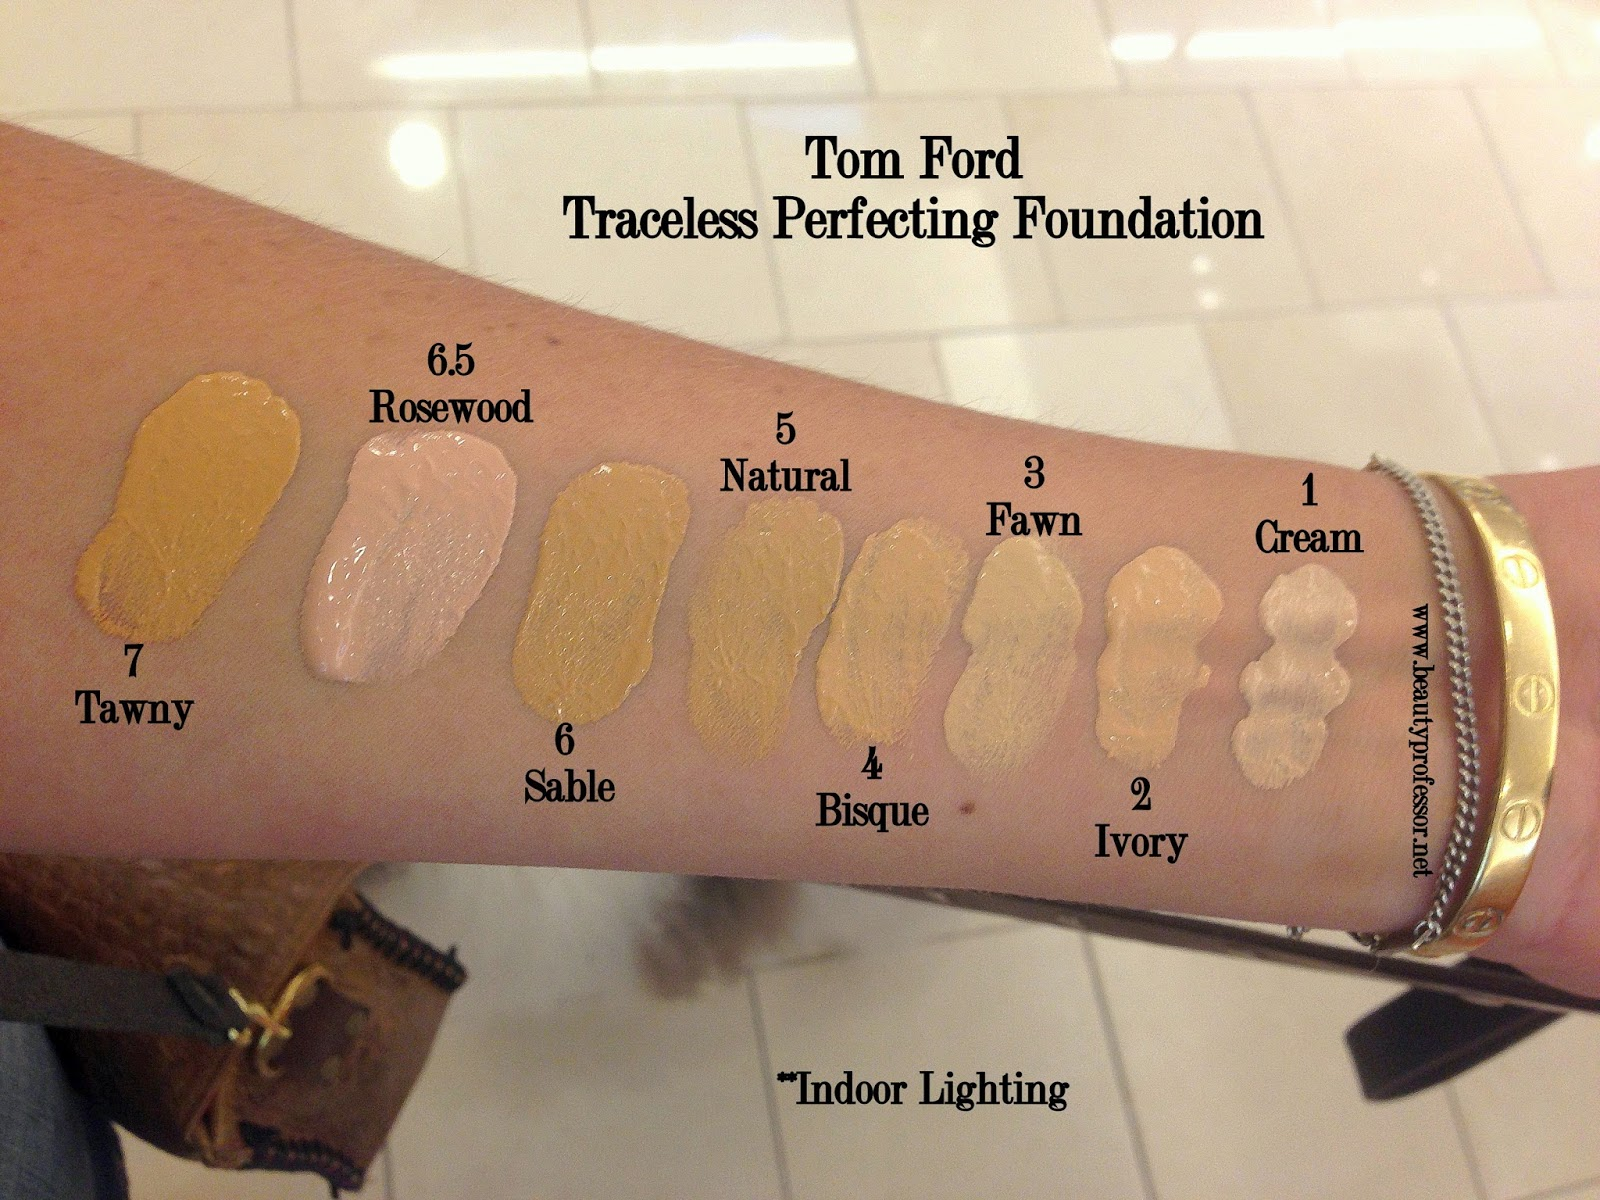 Traceless All Perfecting Tom makeup nyc Foundation Ford  of natural 15 all Shades Swatches